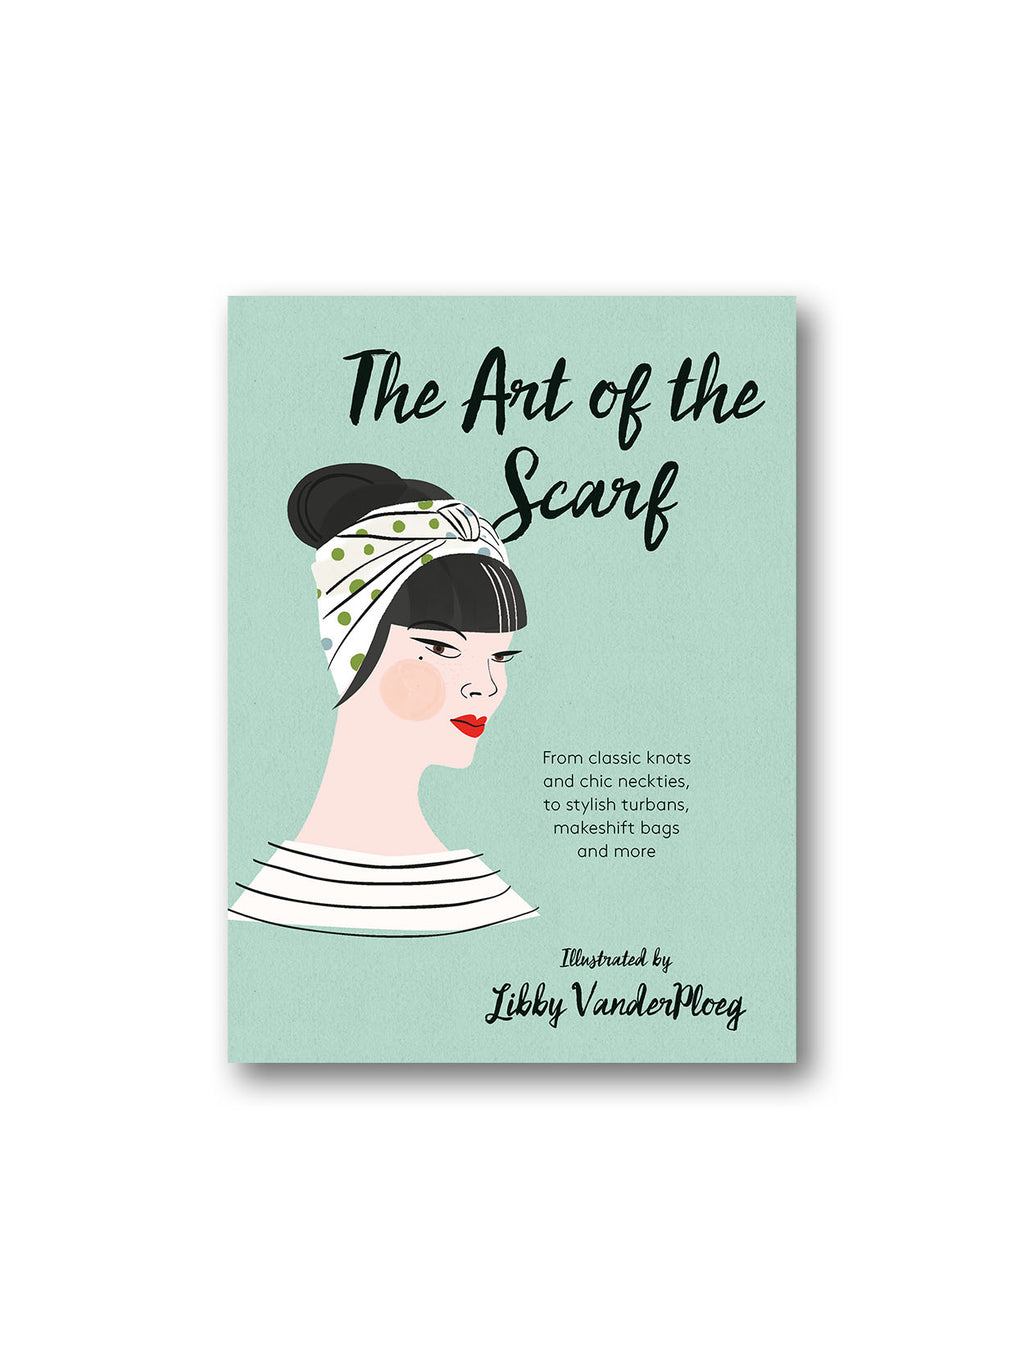 The Art of the Scarf : From Classic Knots and Chic Neckties, to Stylish Turbans, Bags and More